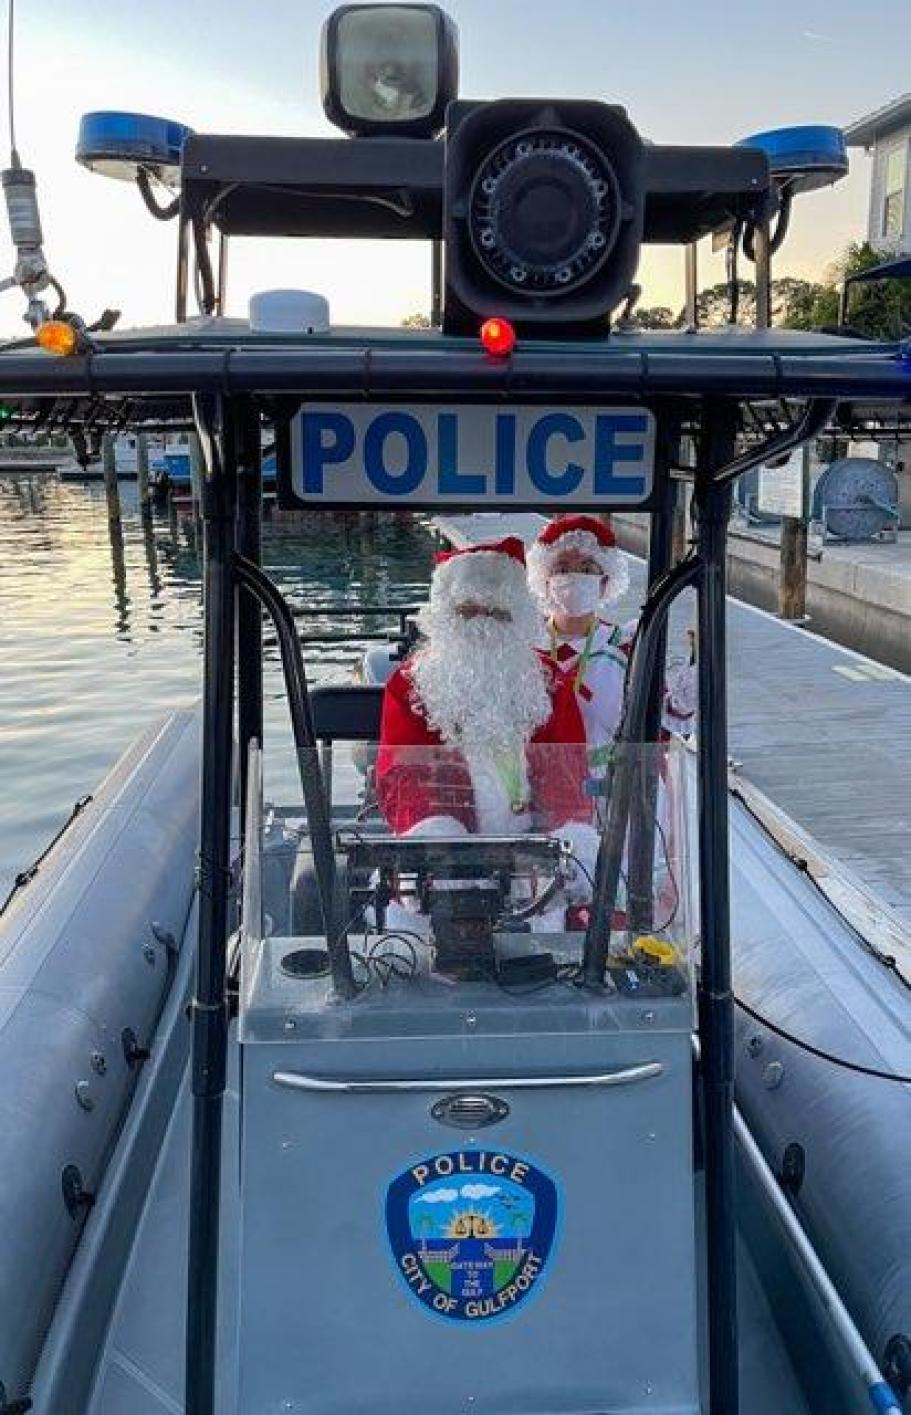 A man dresses as Santa and Mrs. Claus on a police boat in a marina at sunset.